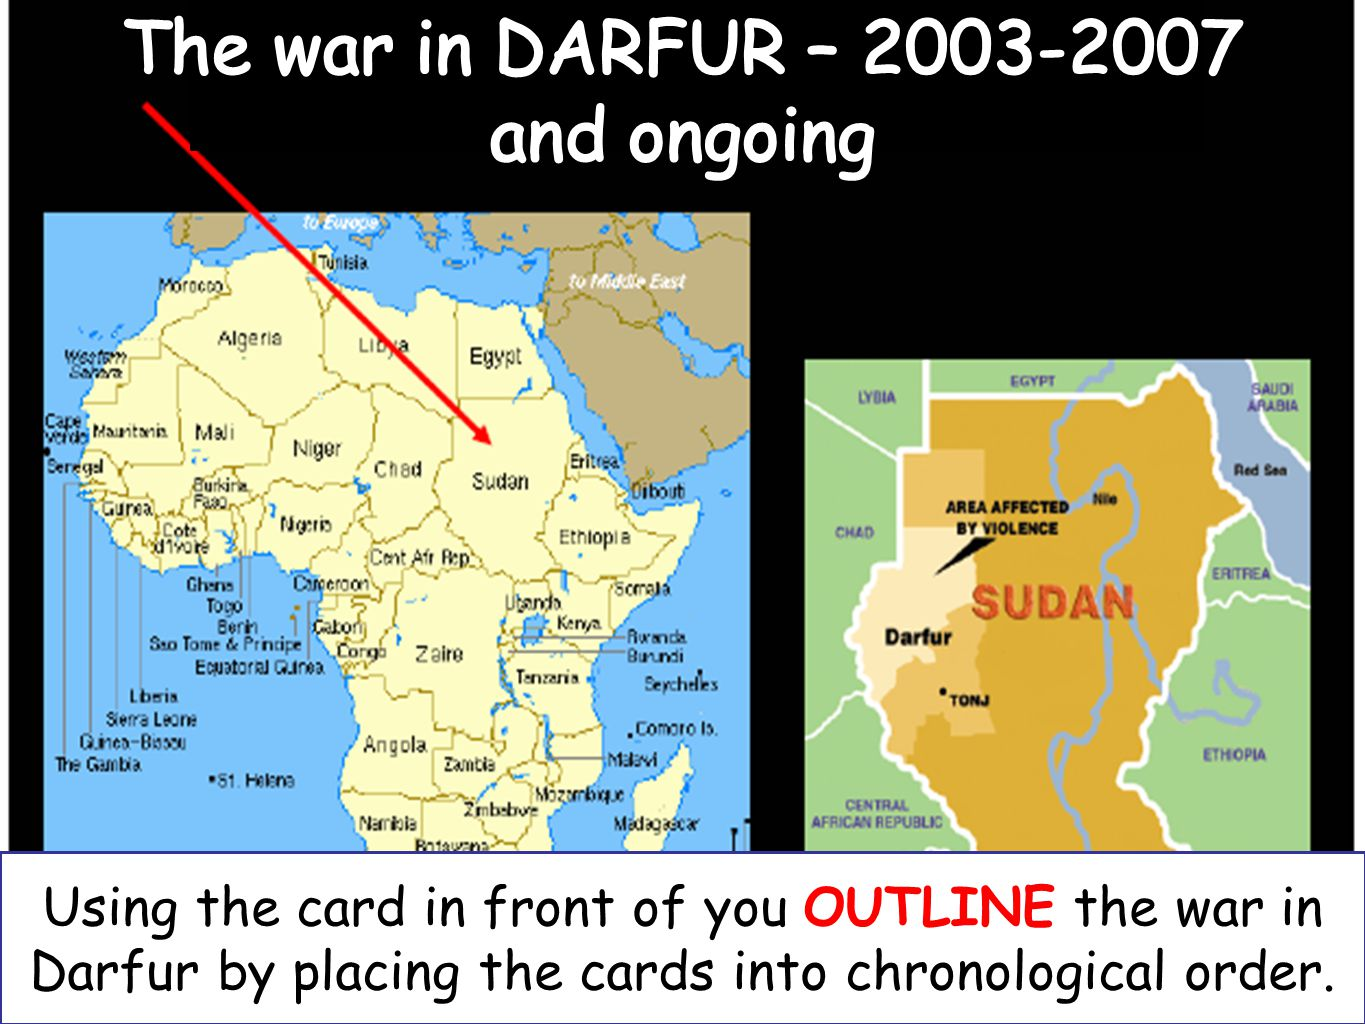 The war in Darfur is a CIVIL WAR in the west of Sudan.